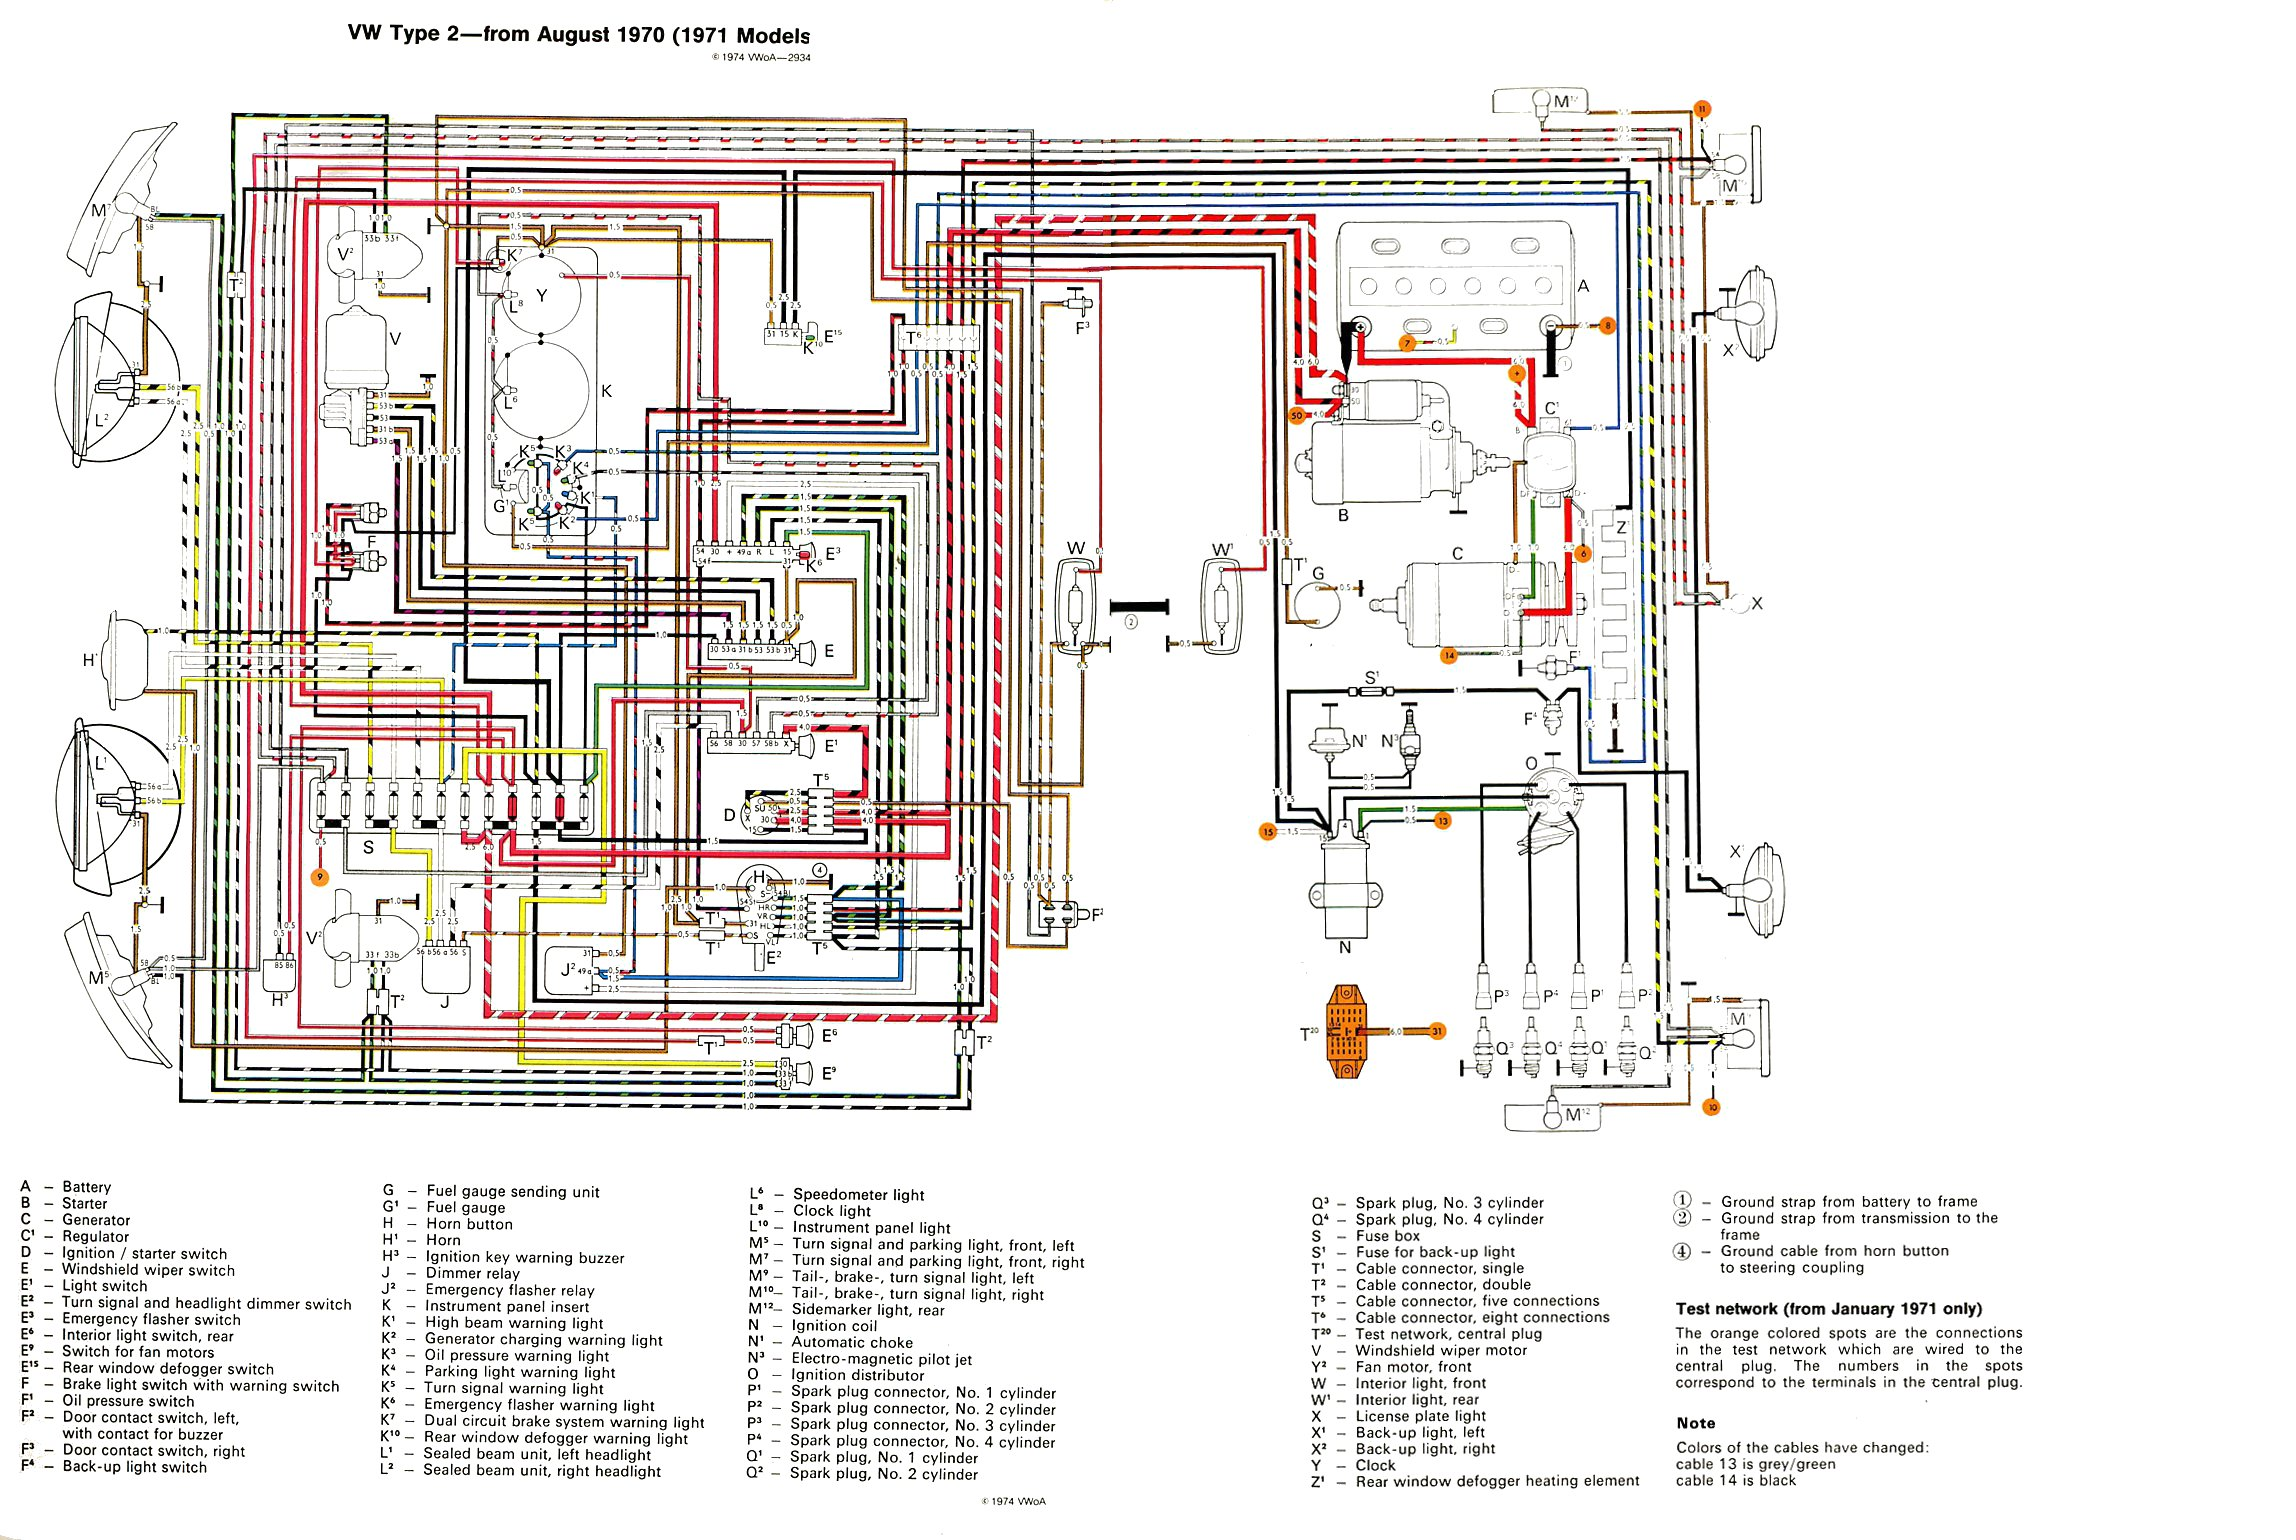 thesamba com type 2 wiring diagrams rh thesamba com 70 Chevy Wiper Motor  Wiring 1971 Corvette Wiring Diagram